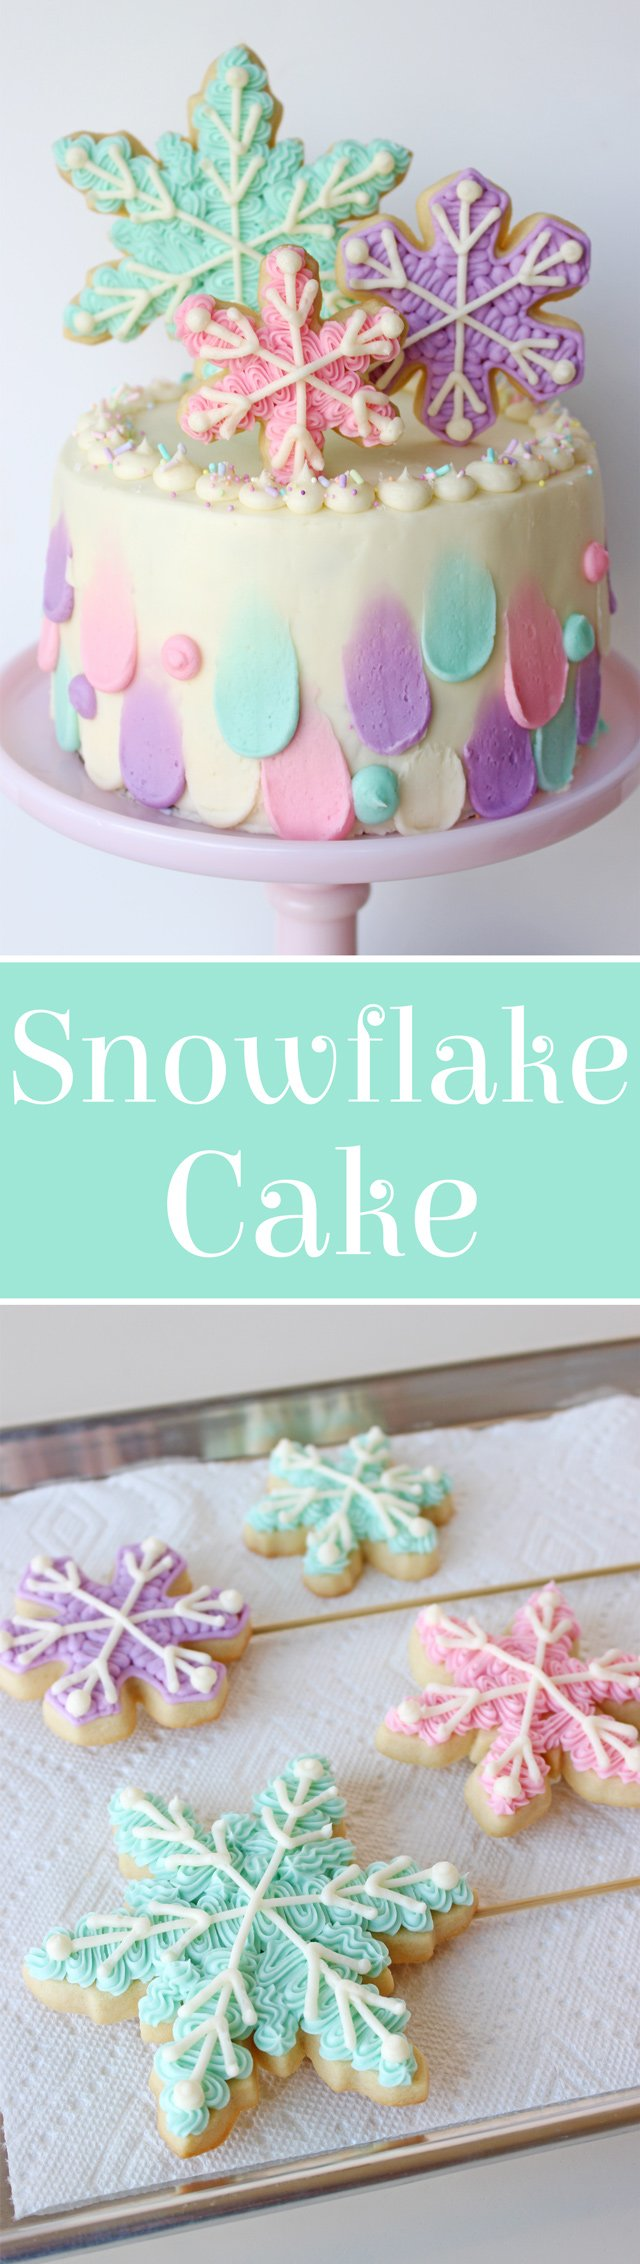 Snowflake Cake with pretty snowflake cookies!